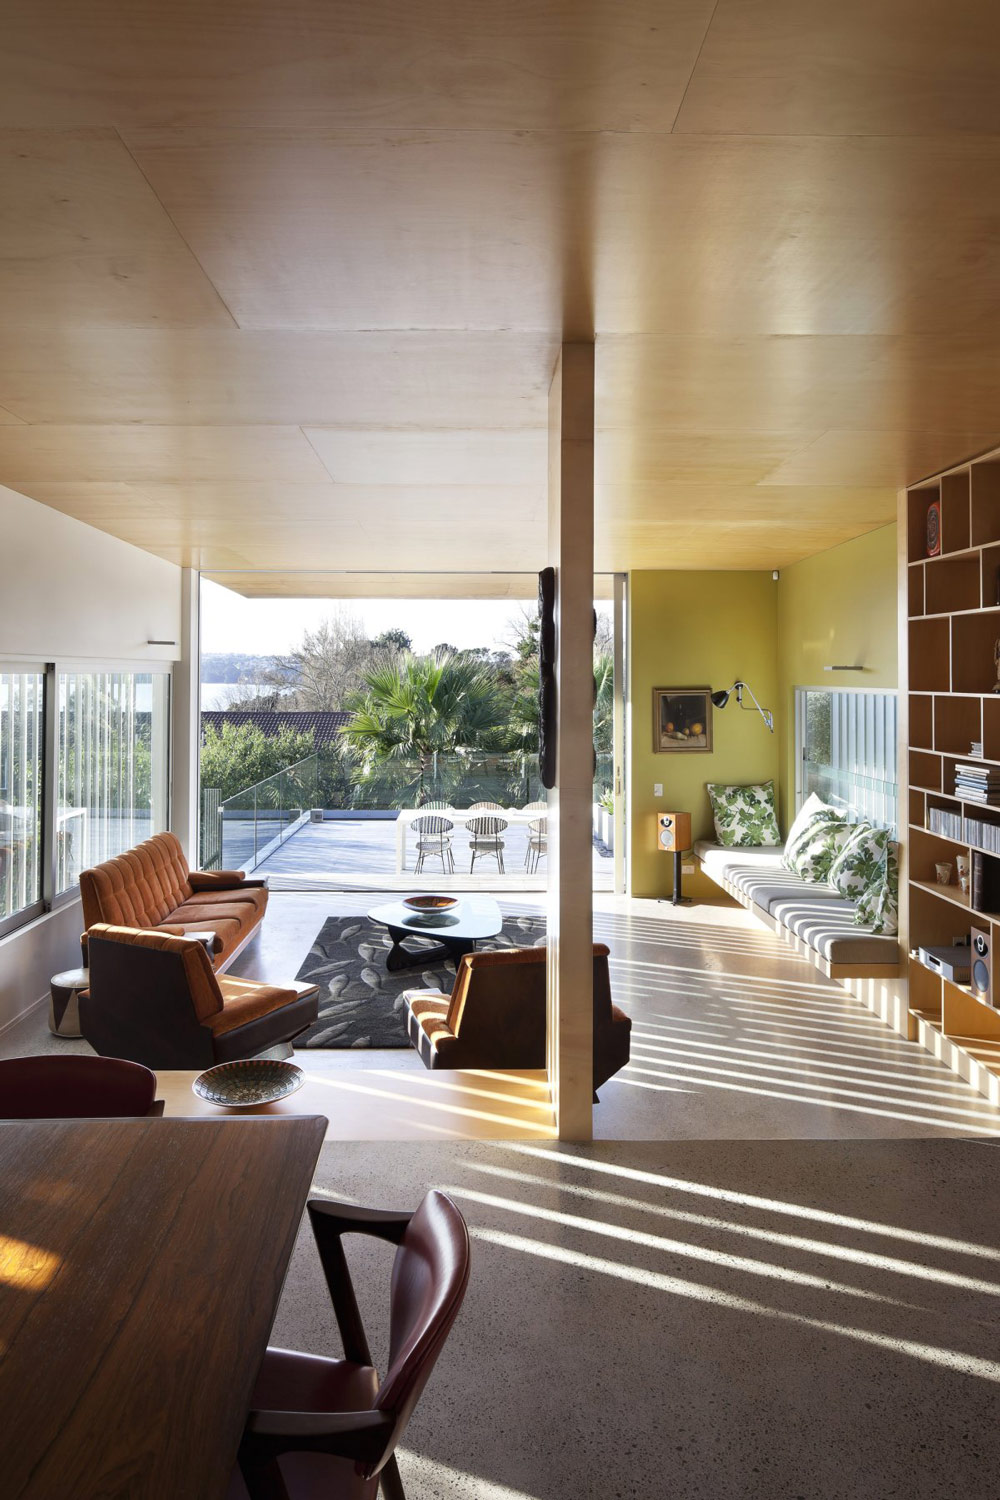 Sofas, Coffee Table, 1950-60s Inspired Home in Auckland, New Zealand